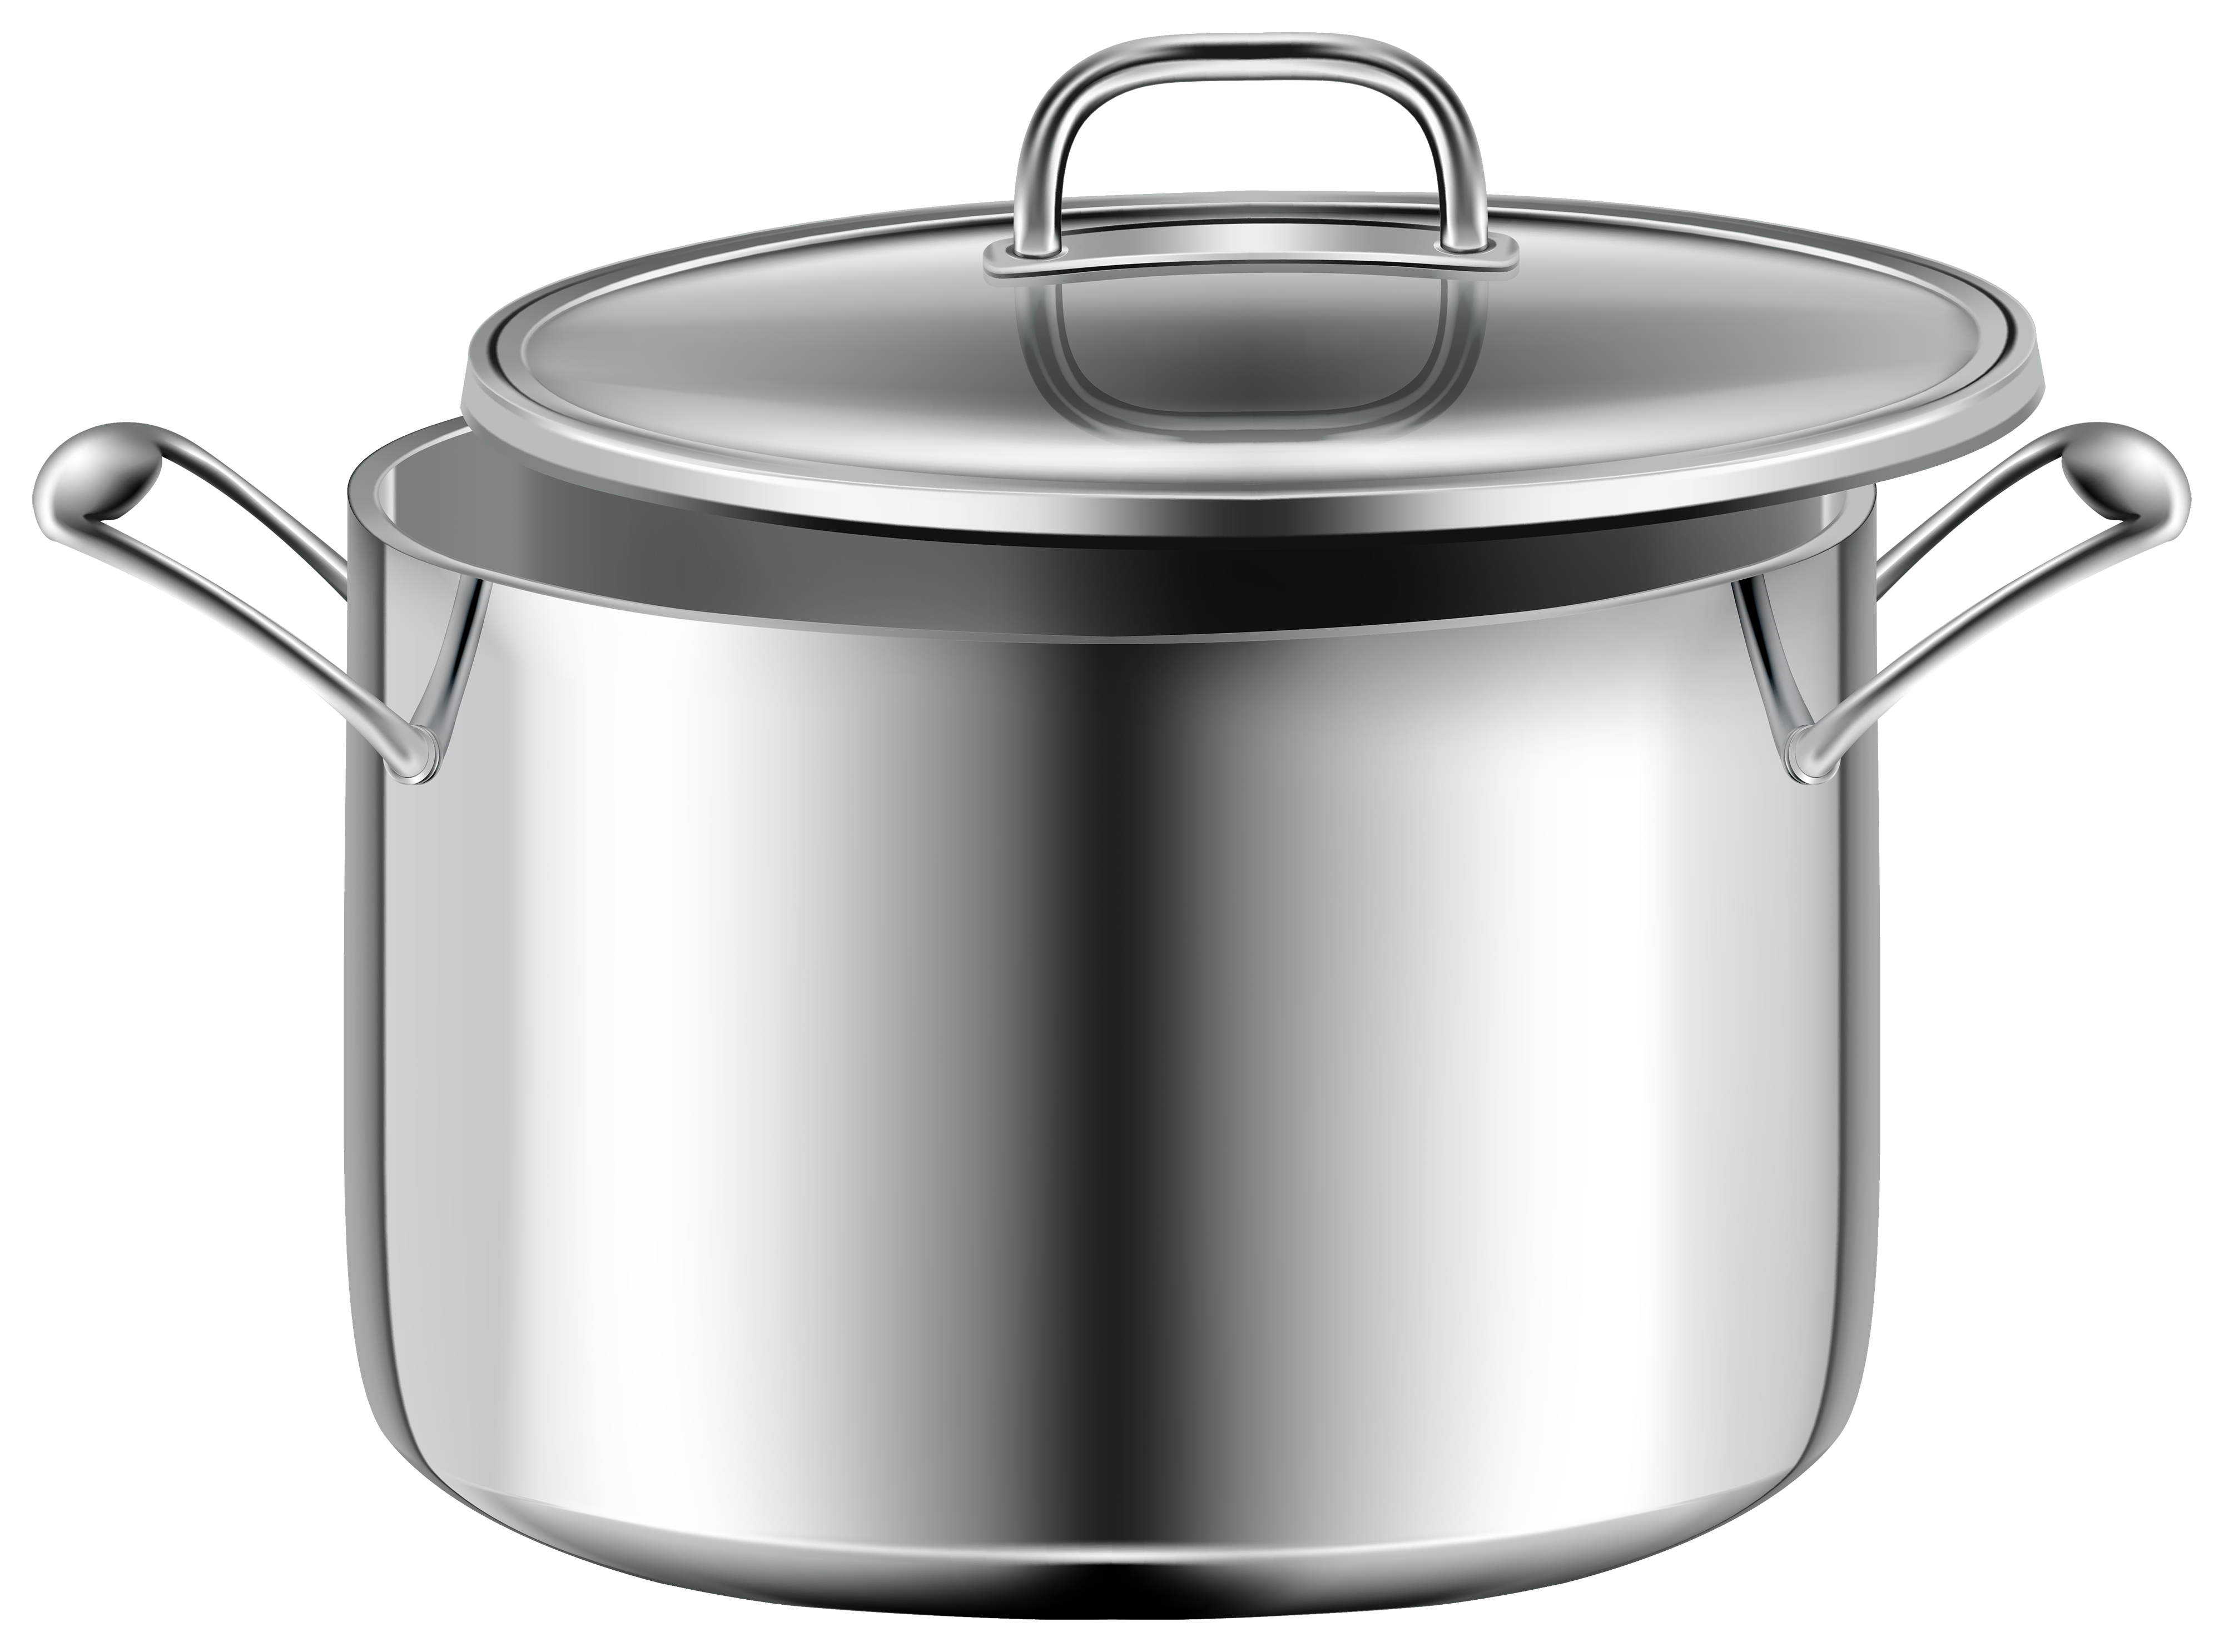 Pot clipart cookin. Cooking png best web